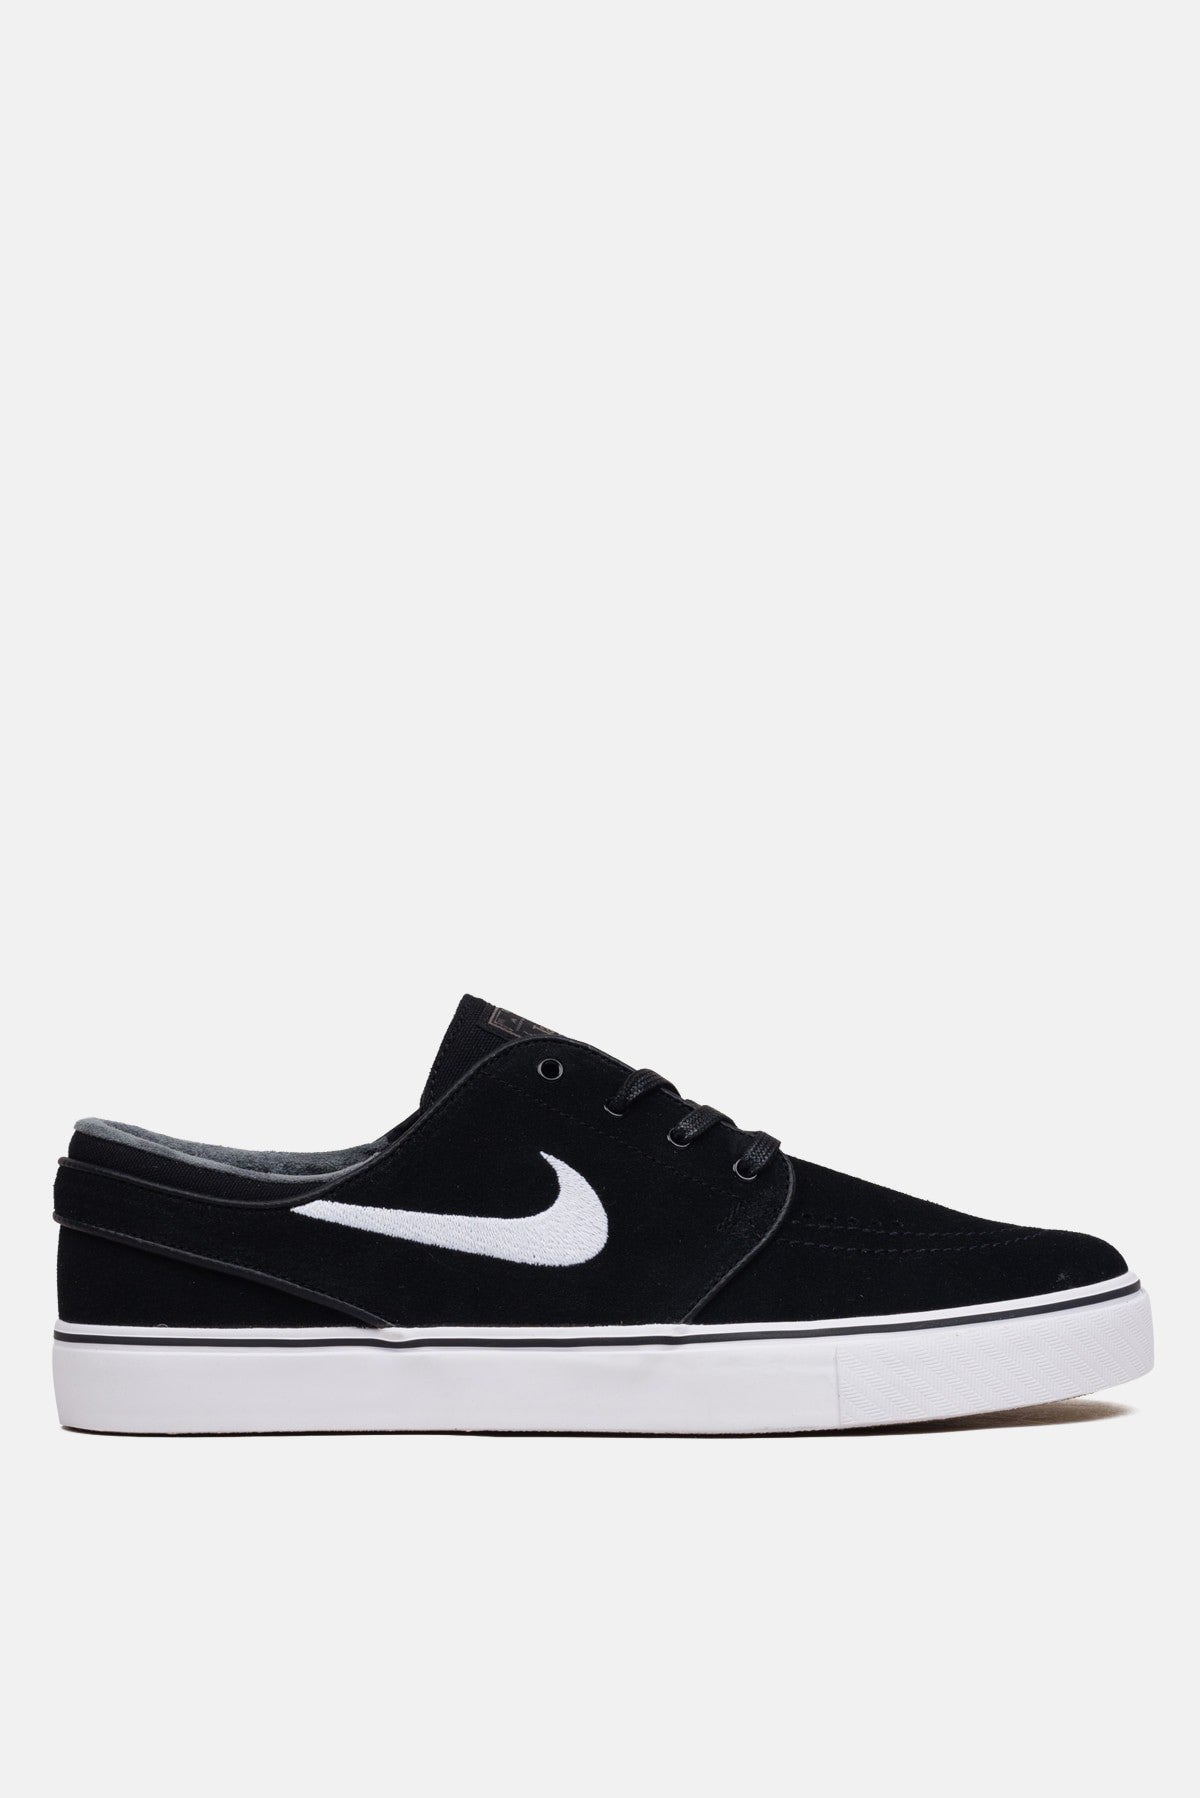 d7fb6039c4d0 Nike SB Zoom Stefan Janoski Shoes available from Priory